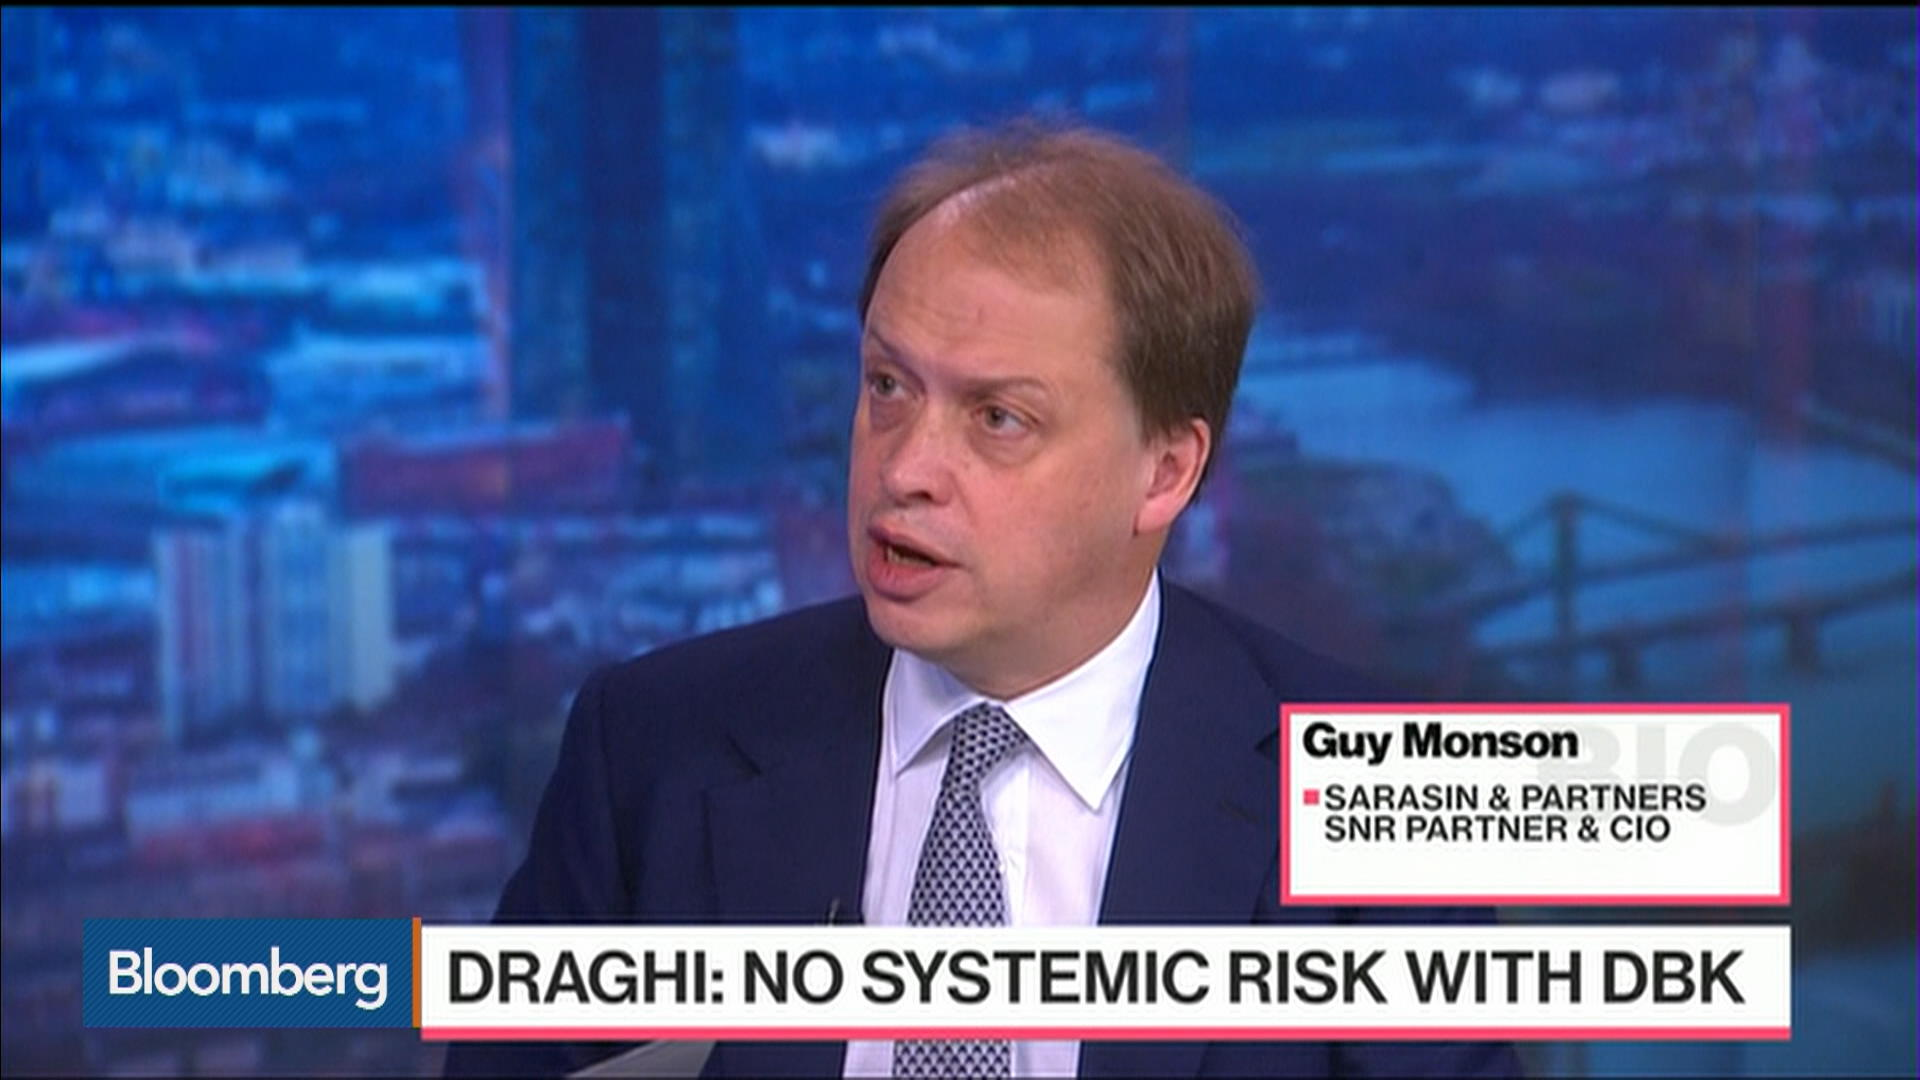 https://www bloomberg com/news/videos/2016-09-29/how-will